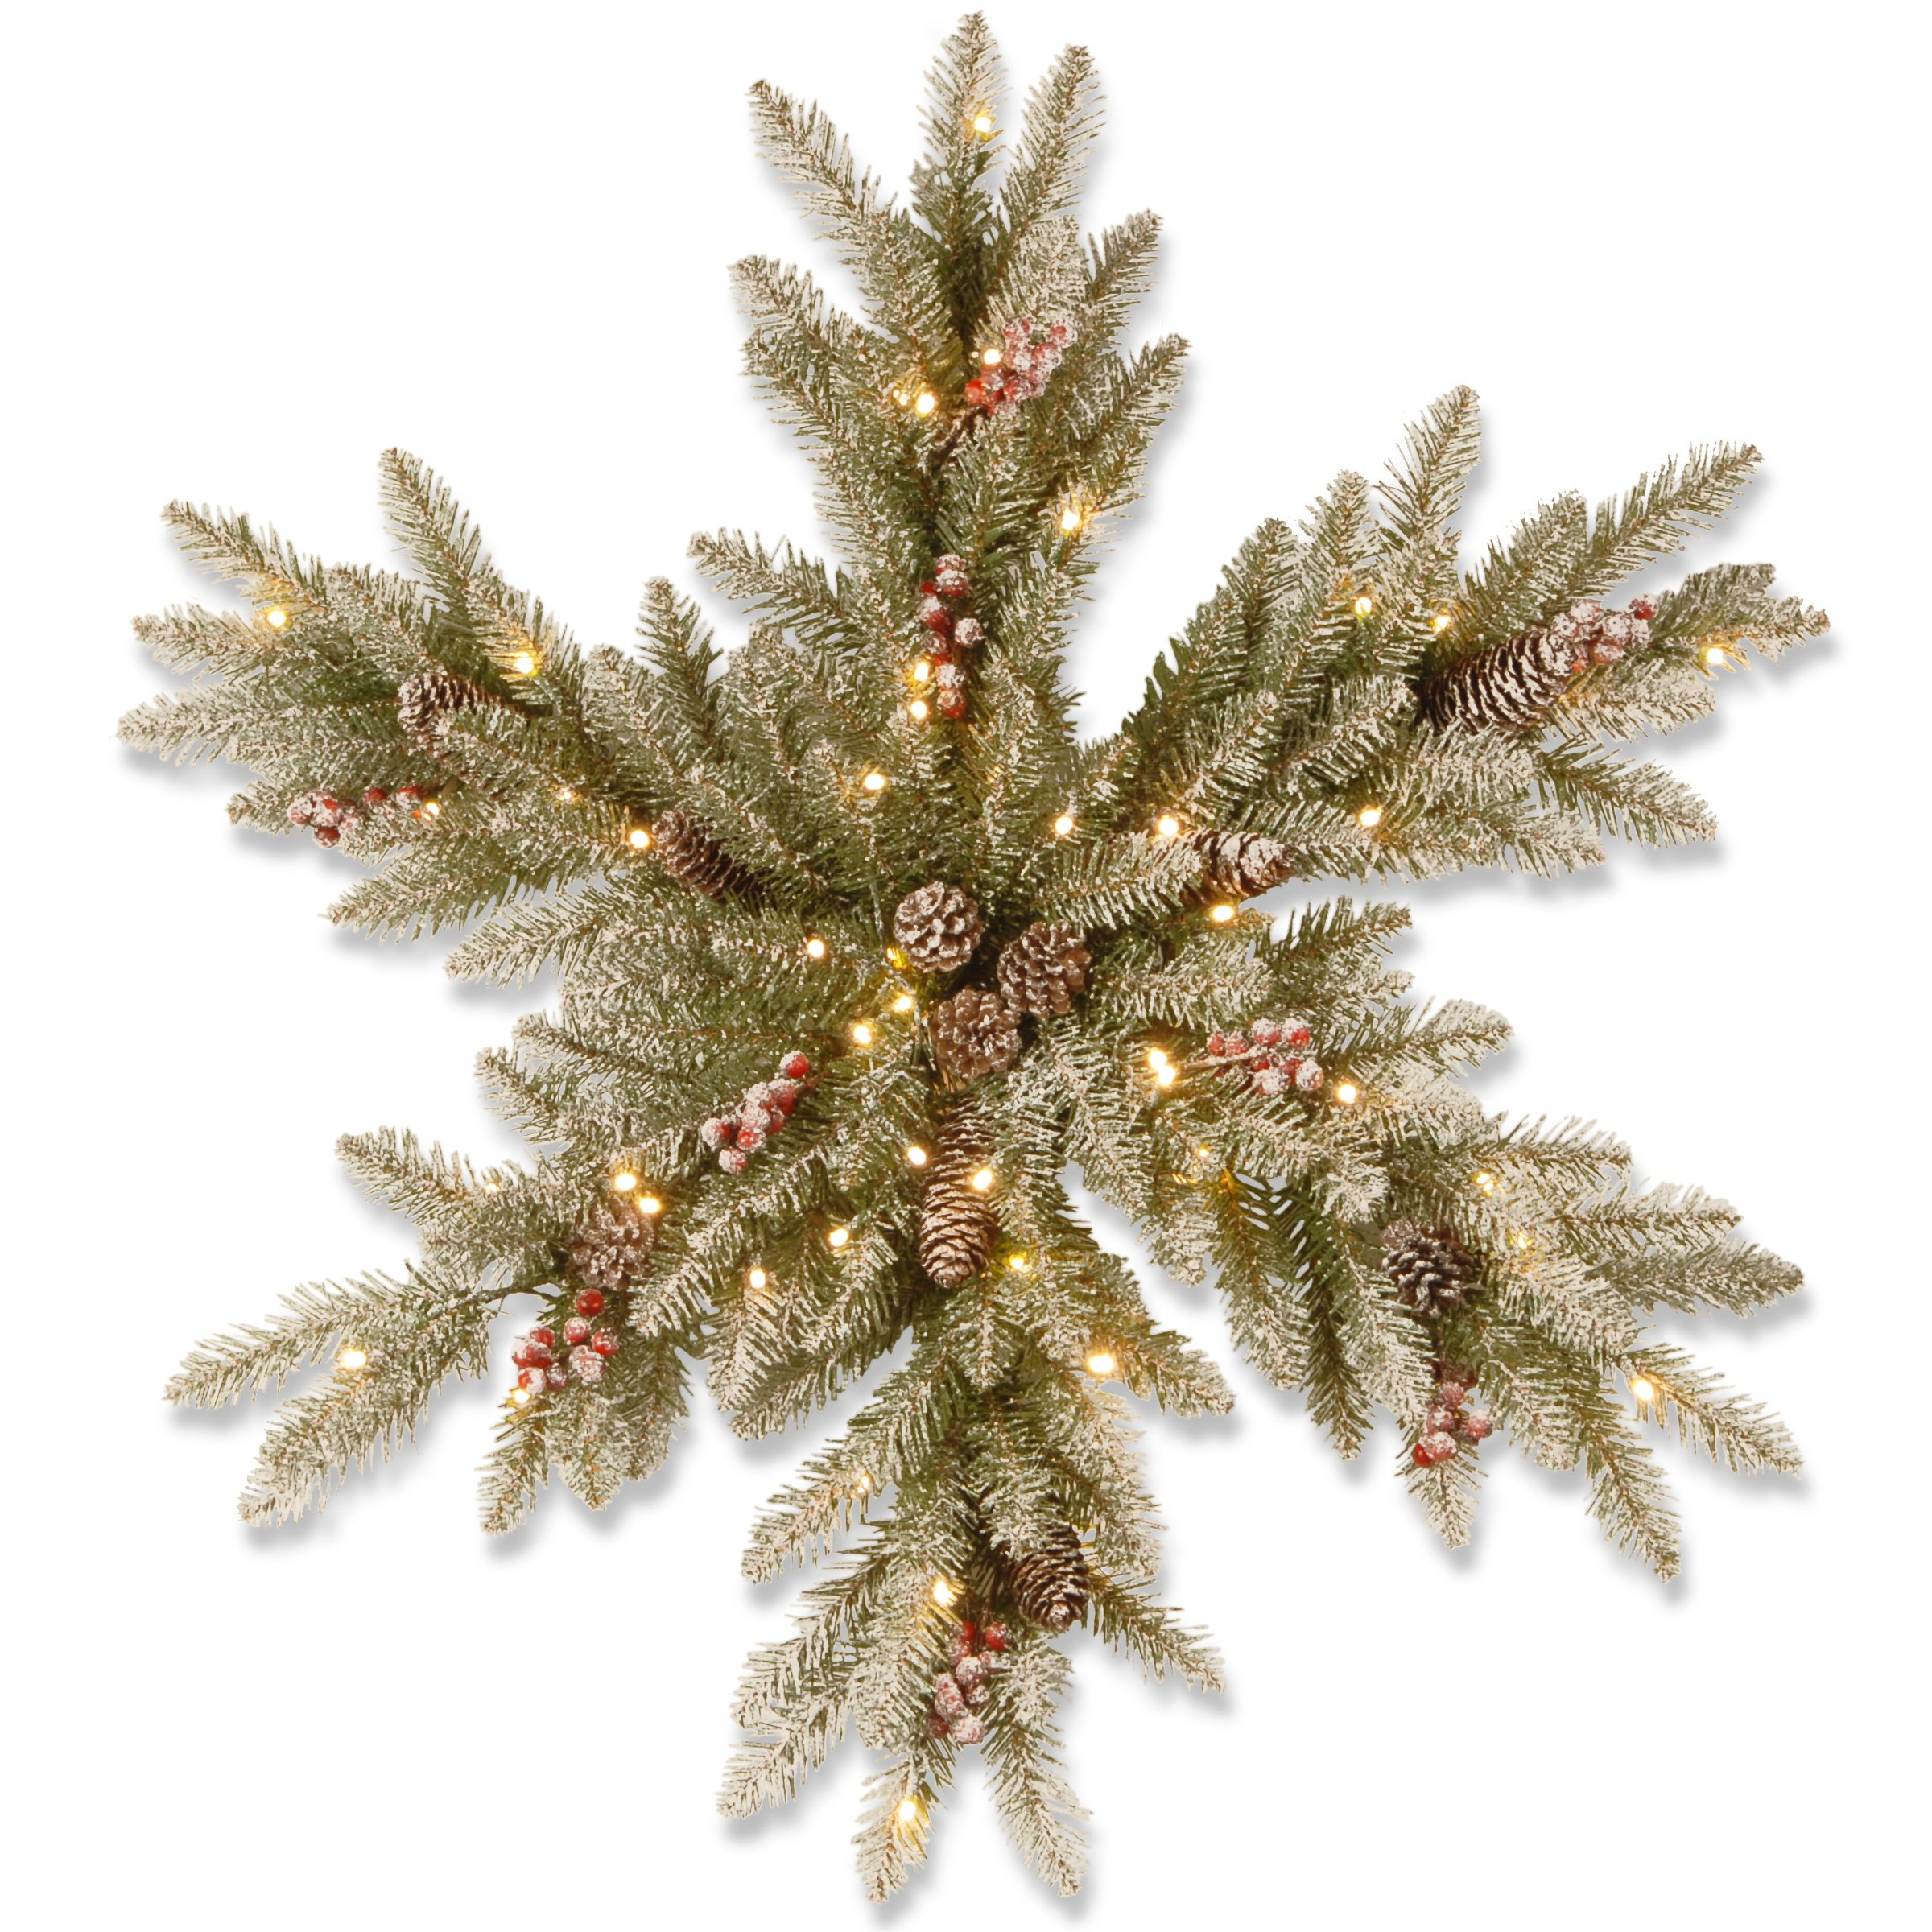 National Tree 32 Inch Dunhill Fir Snowy Snowflake with Cones, Red Berries and 35 Warm White Battery Operated LED Lights with Timer (DUF3-300L-32SB1)